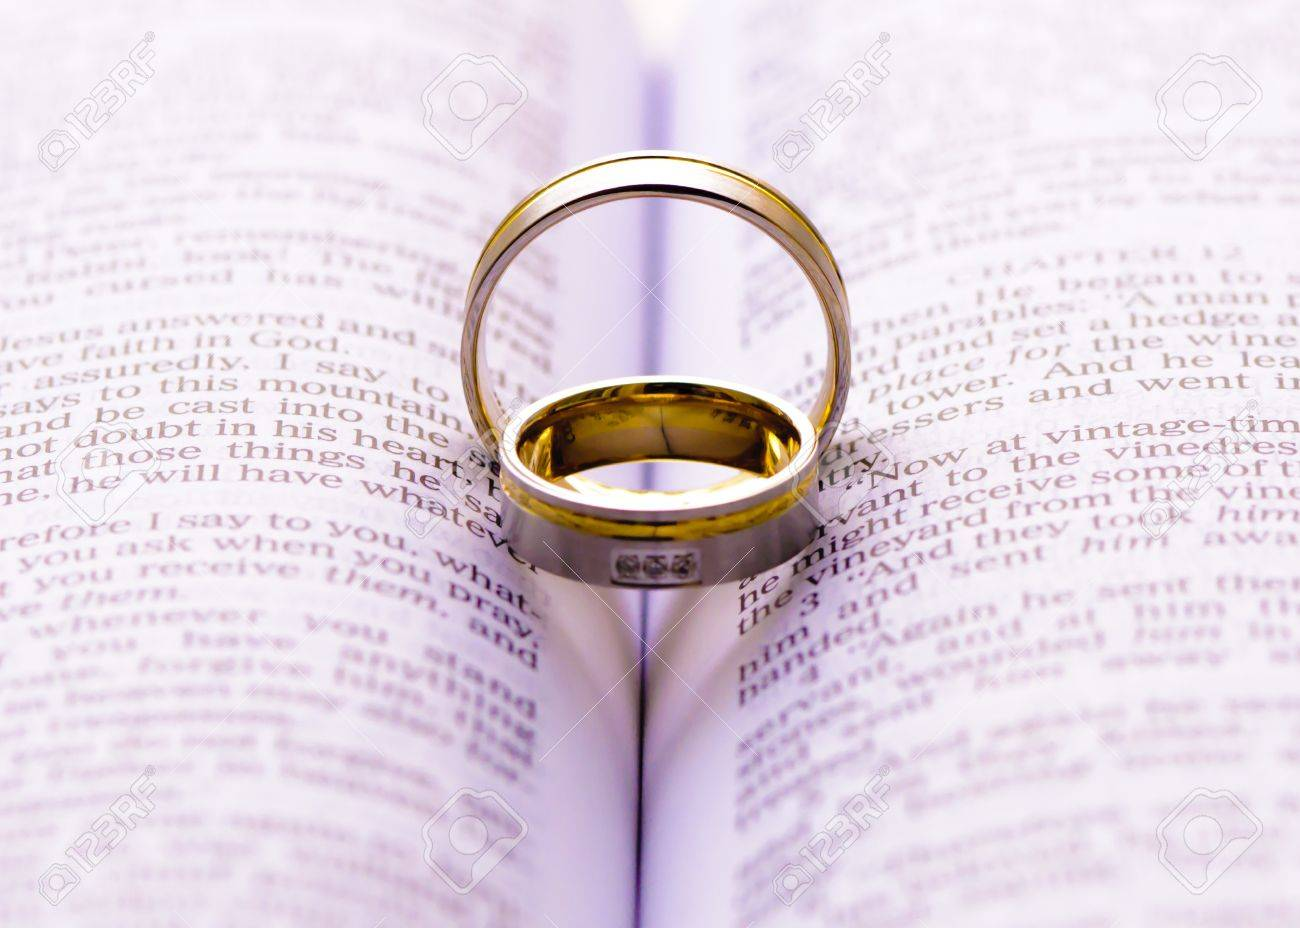 bible open ring marriage wedding celebration scripture to online at rings a picture stock on